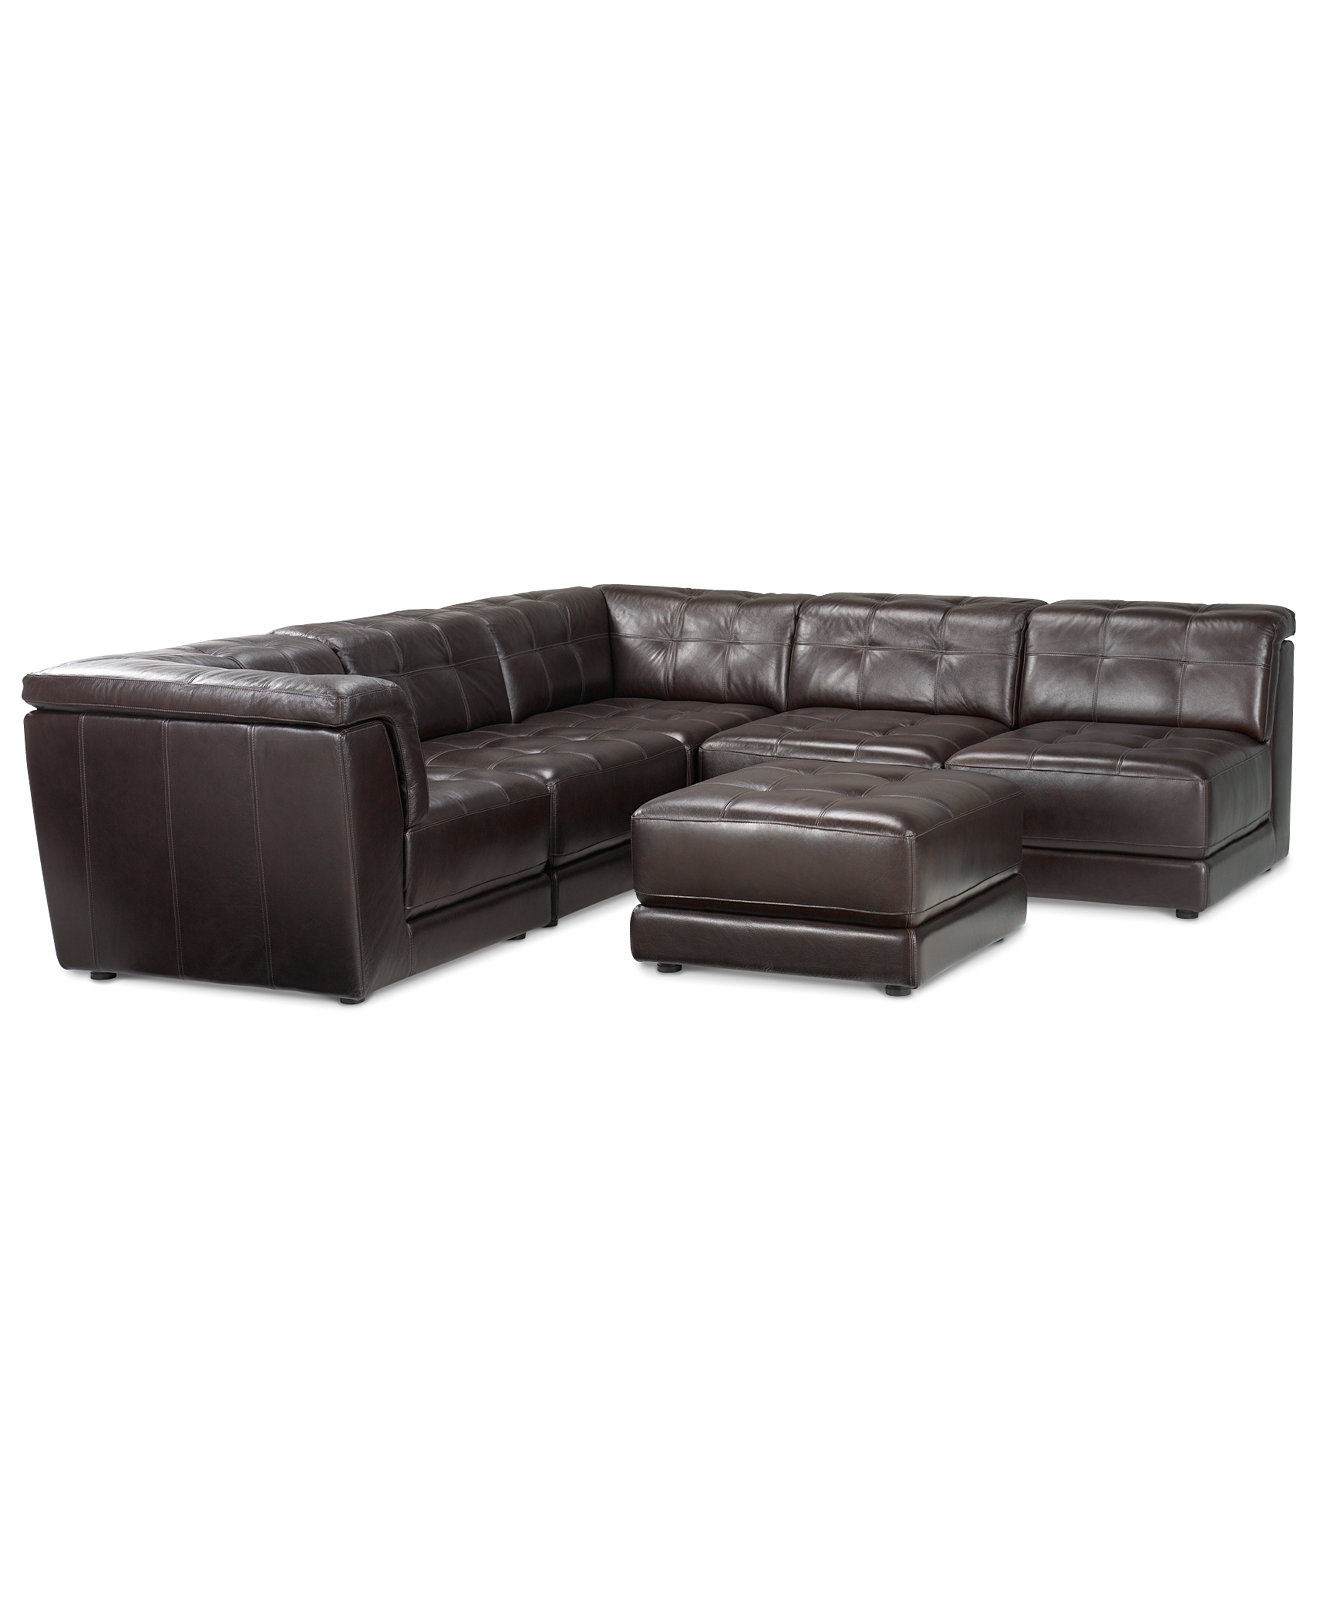 Trendy Stacey Leather 6 Piece Modular Sectional Sofa (3 Armless Chairs, 2 Pertaining To Furniture Row Sectional Sofas (View 13 of 15)